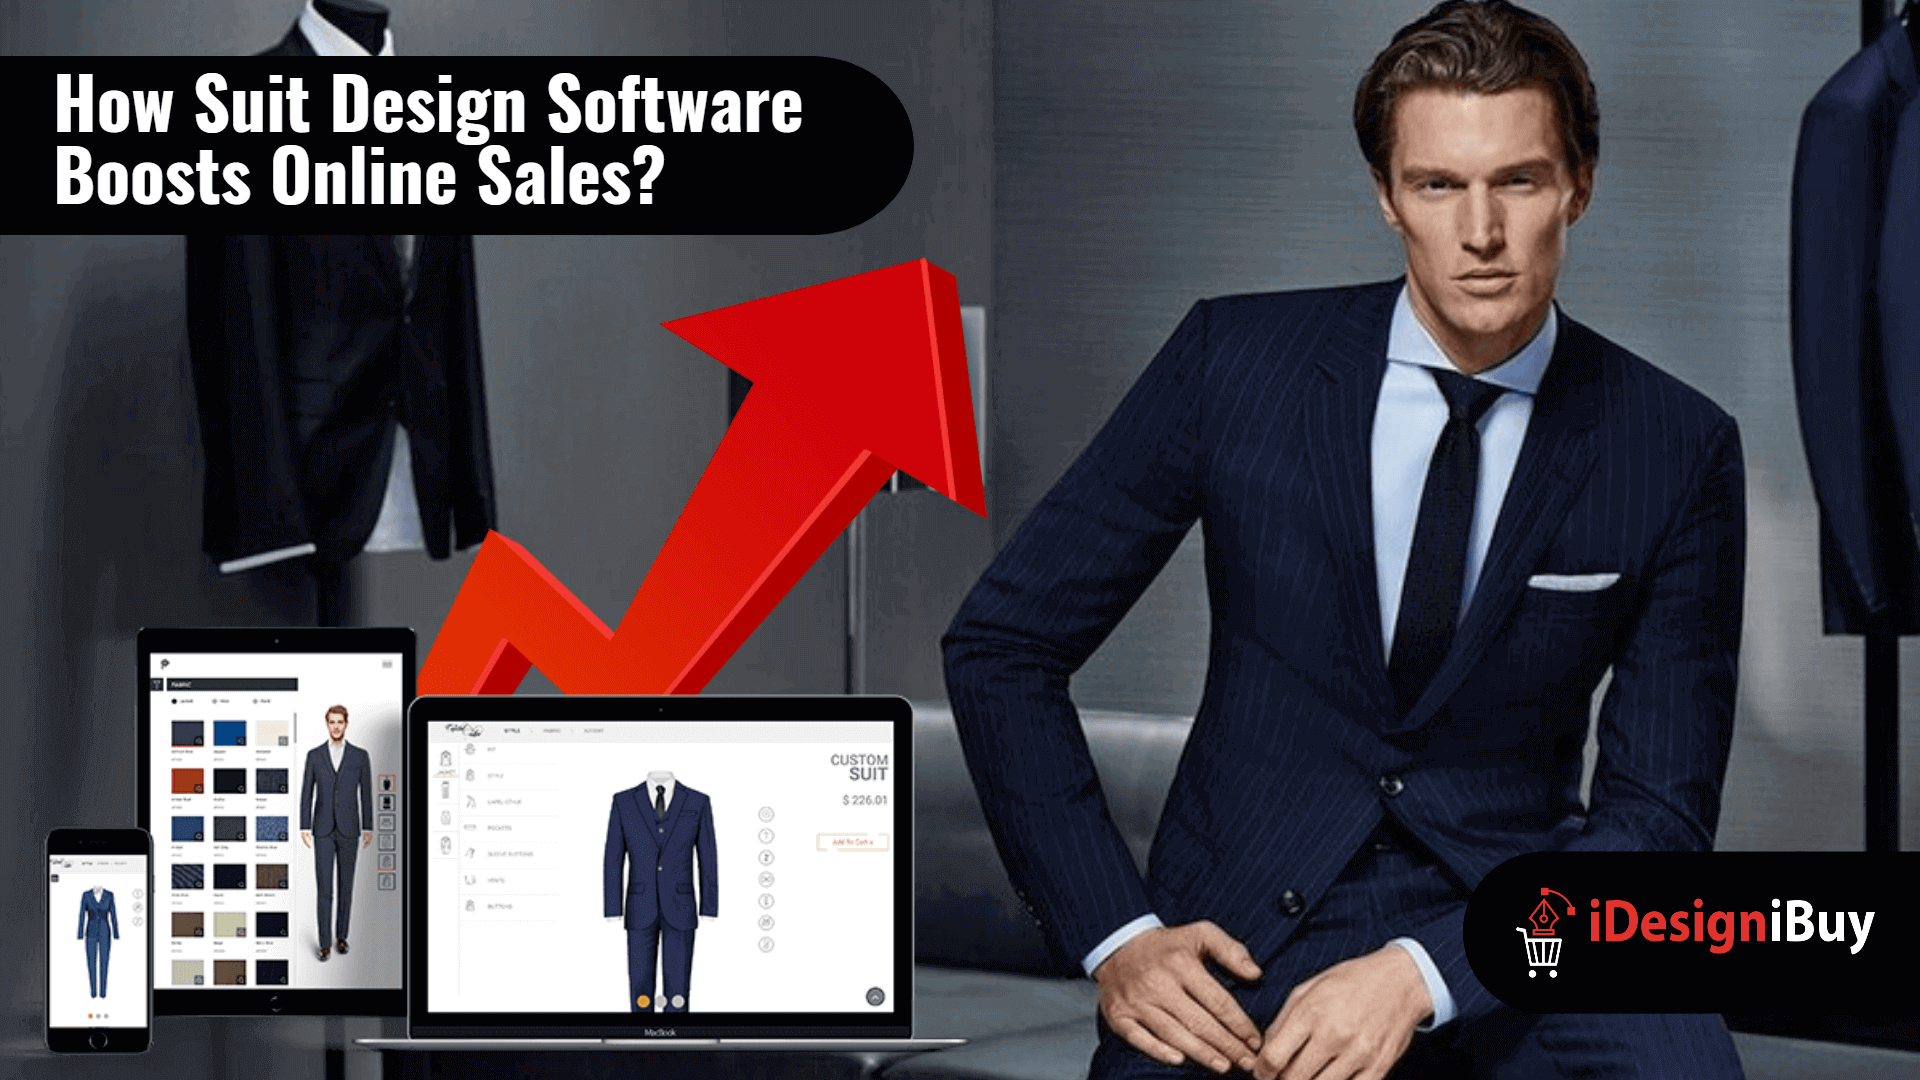 How-Suit-Design-Software-Boosts-Online-Sales?